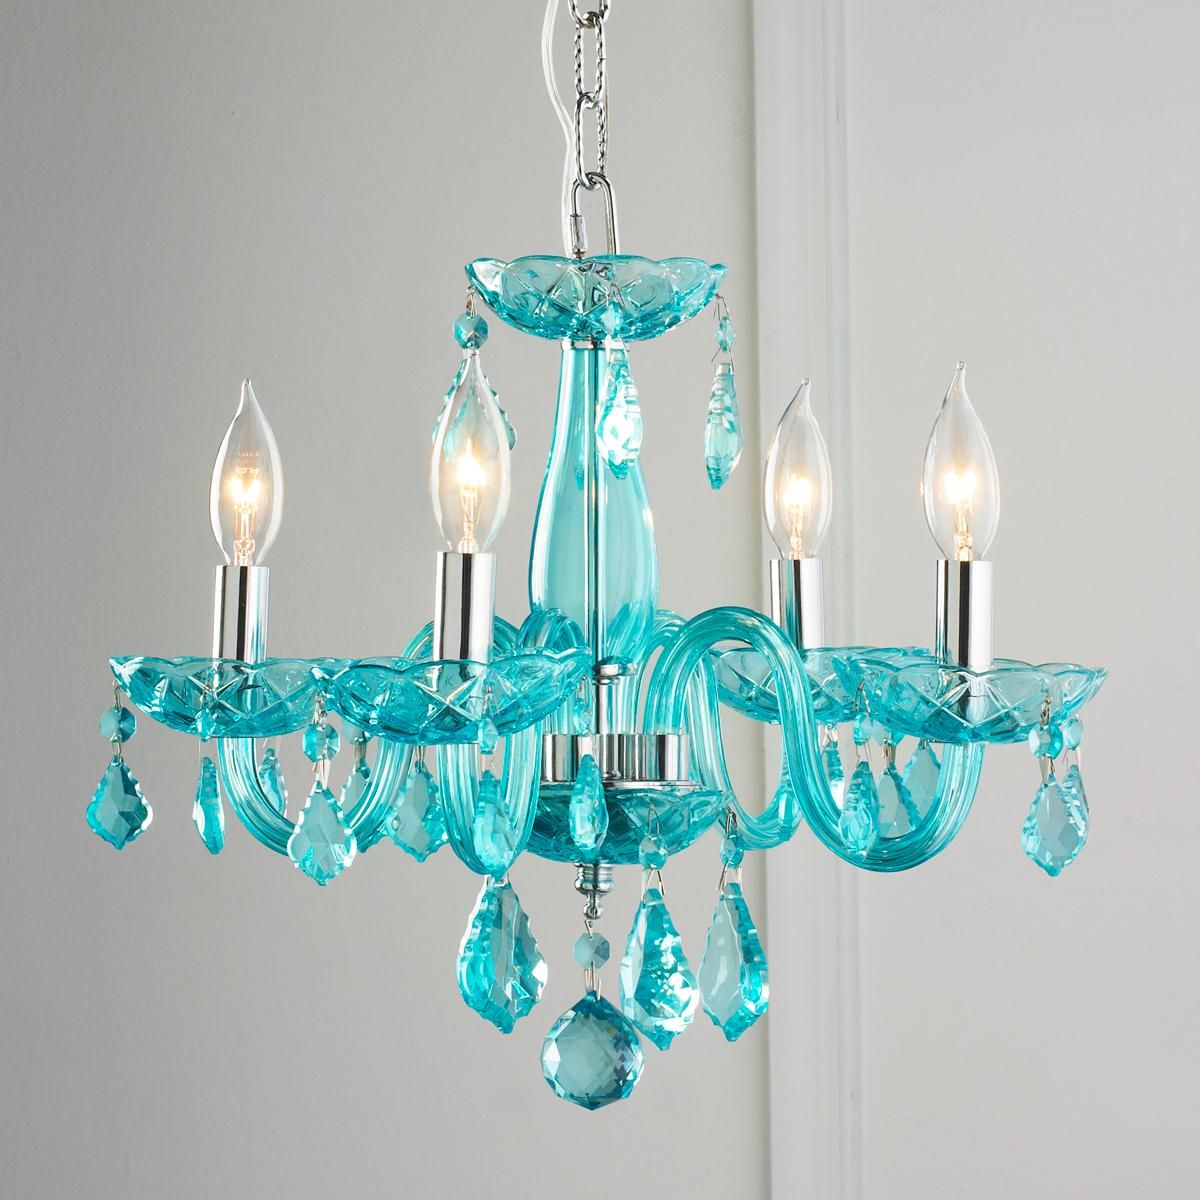 Small Chandeliers For Bedrooms Color Crystal Mini Chandelier Powder Turquoise And Walk In